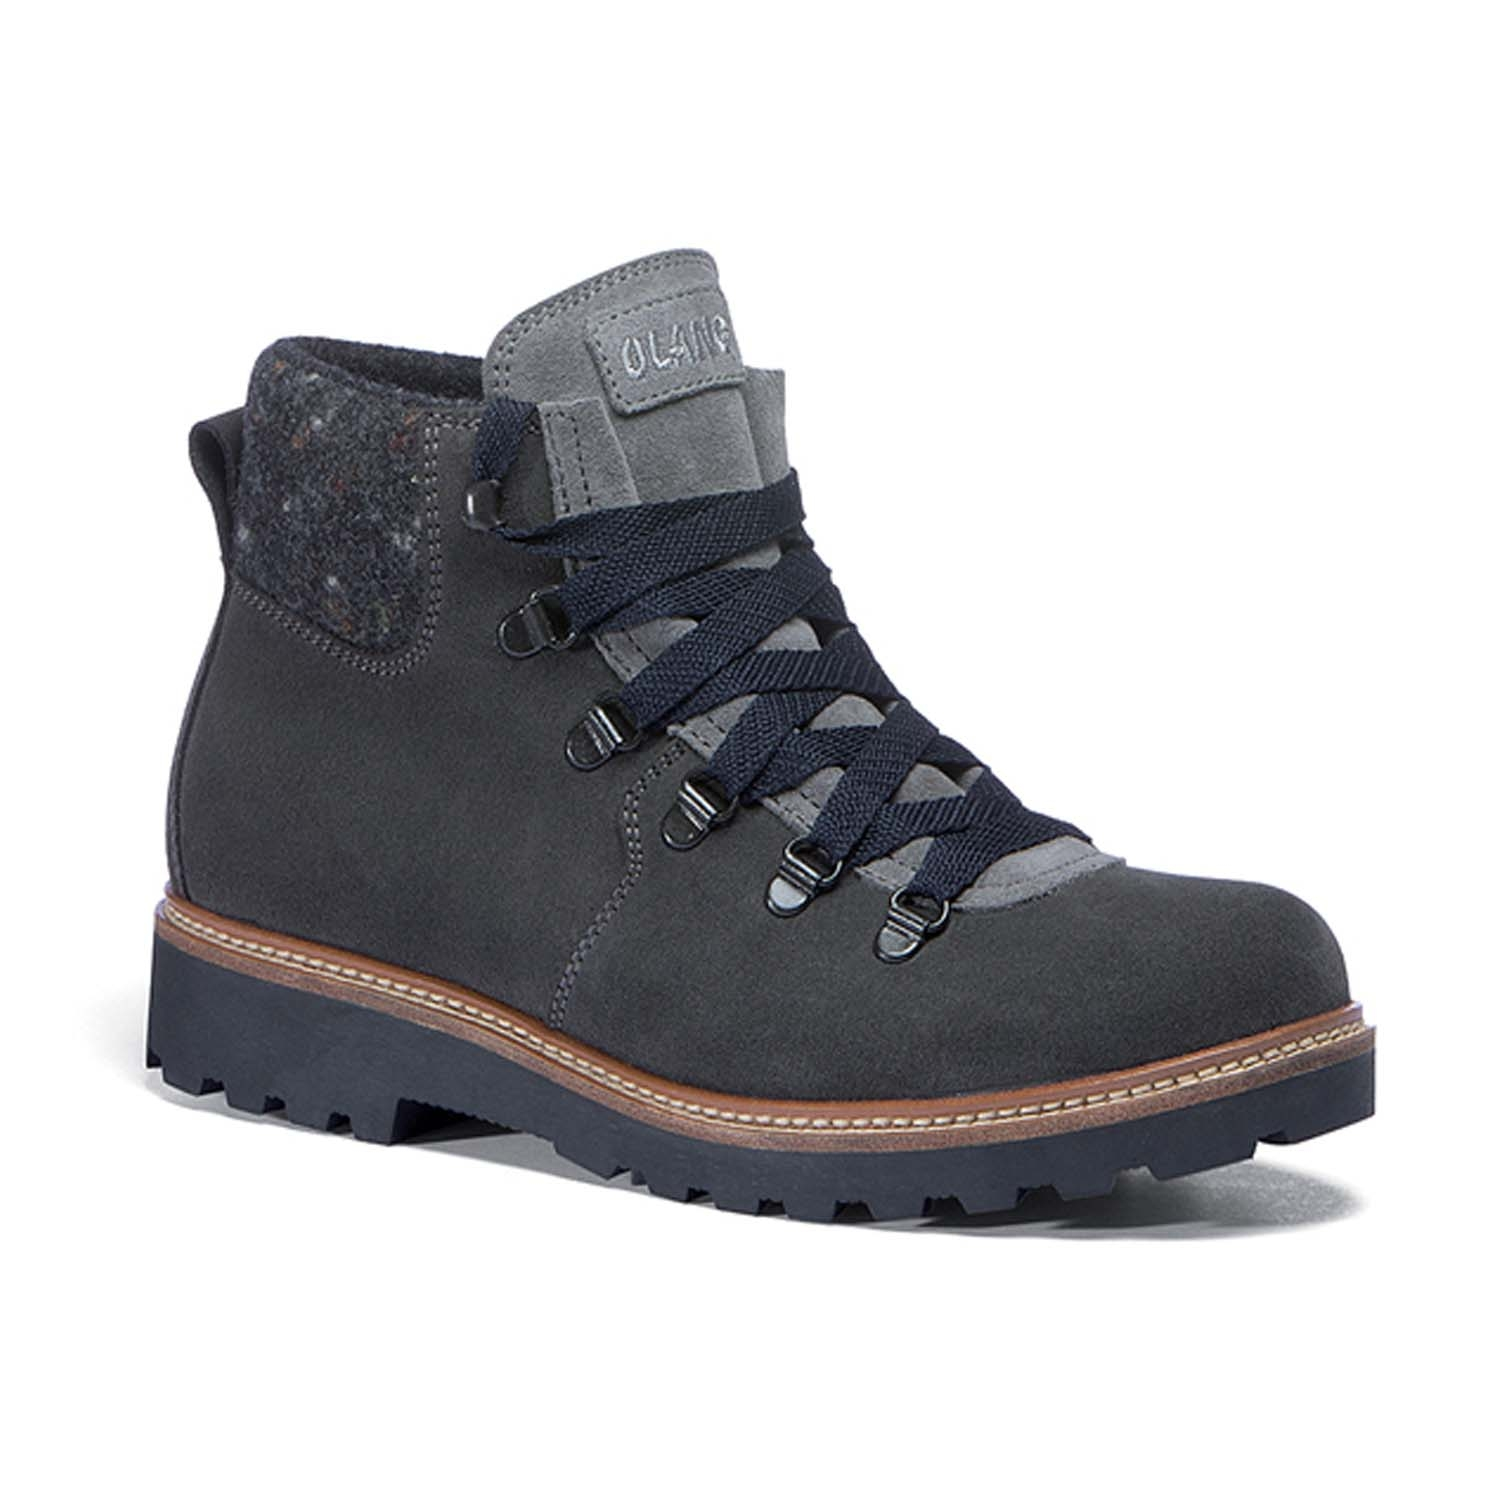 Olang Merano Boot Anthracite 2020